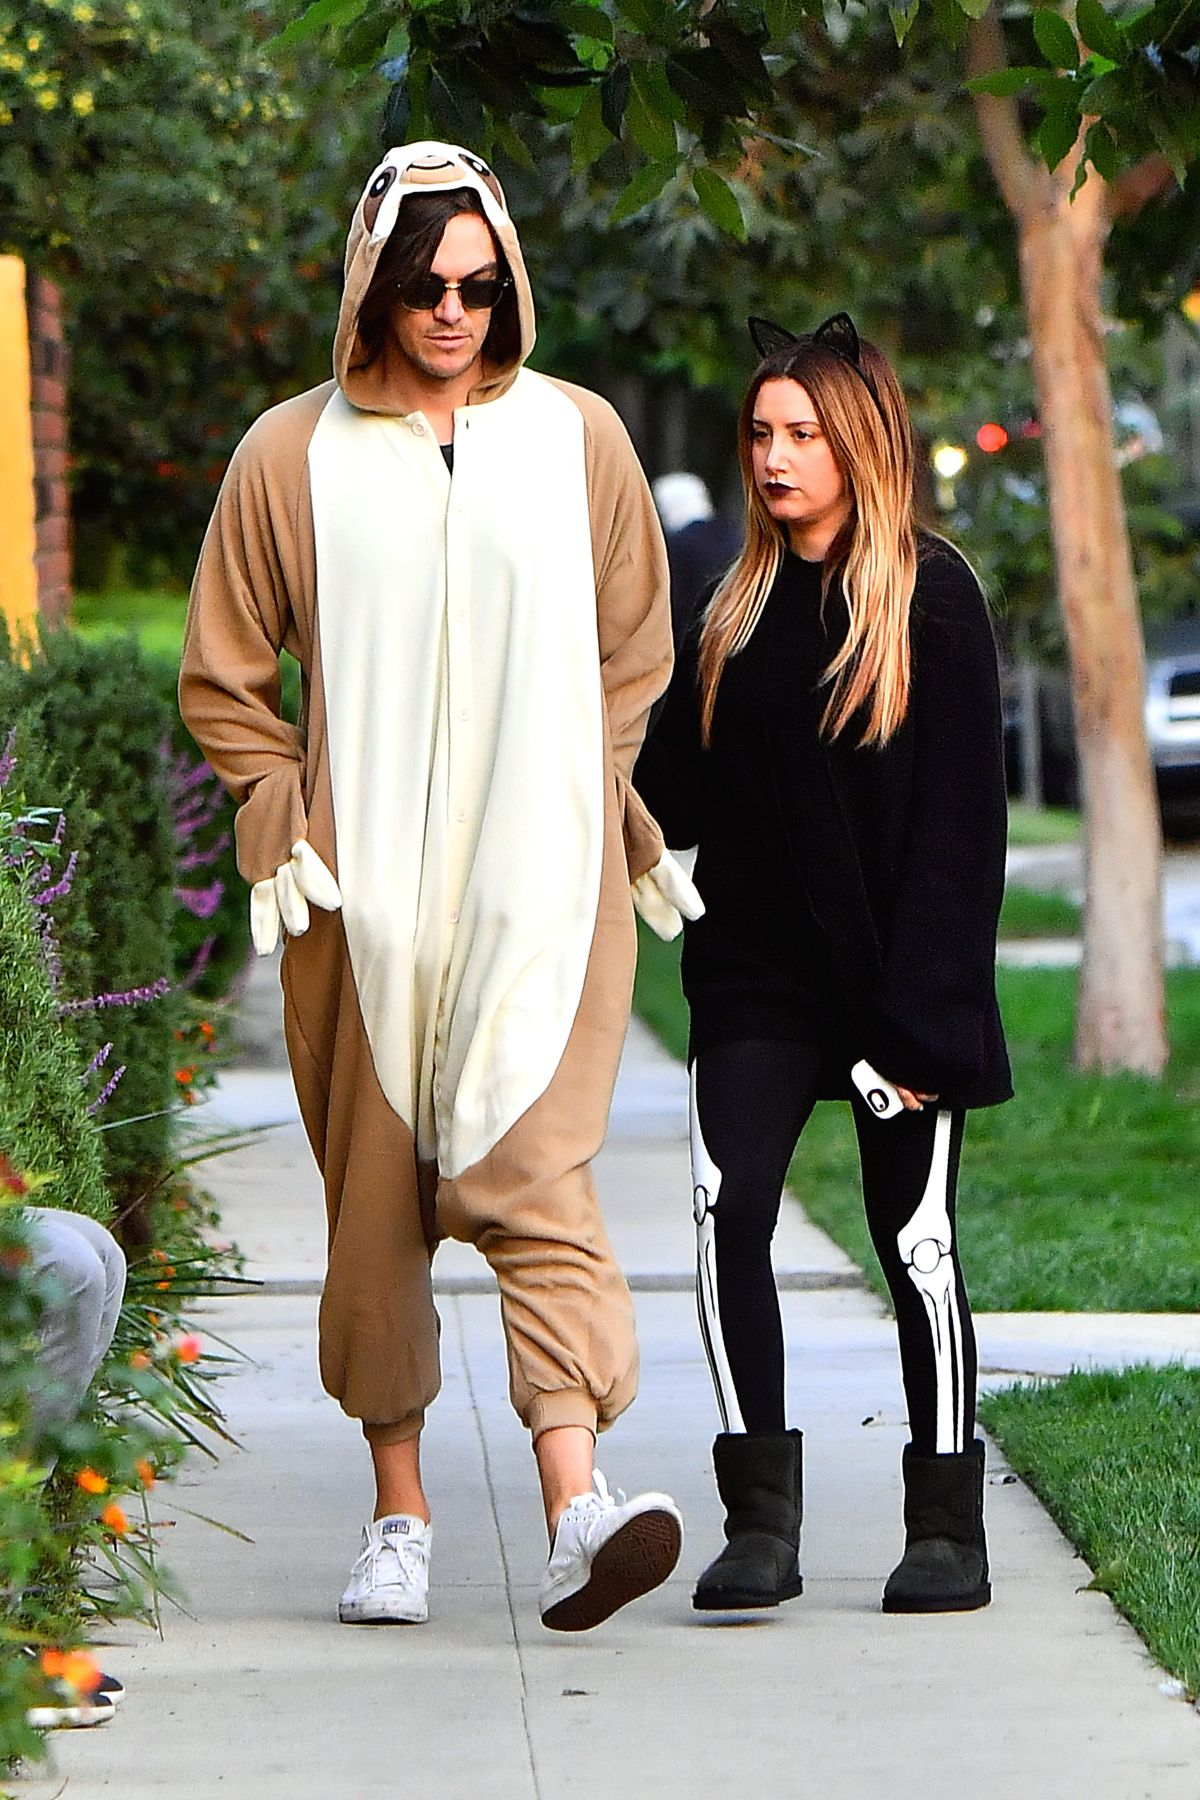 ashley tisdale with christopher french at trick or treating on halloween in toluca lake ca - Ashley Tisdale Halloween